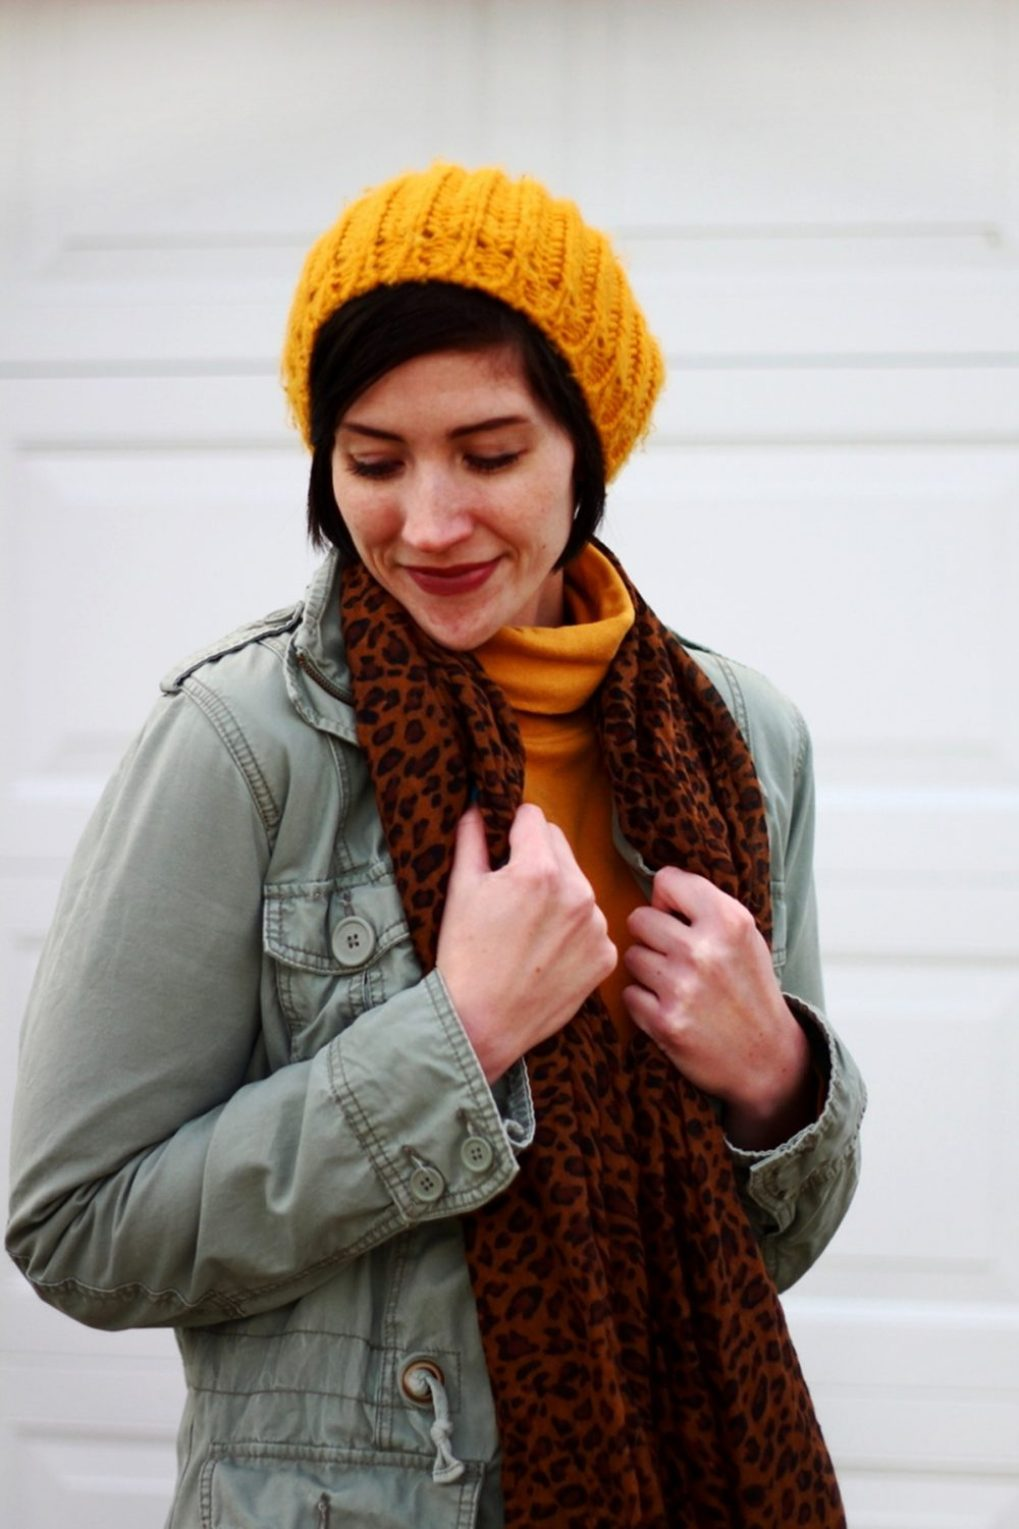 Outfit: mustard yellow turtleneck, olive green utility jacket, leopard print scarf, yellow knit hat, black skater skirt